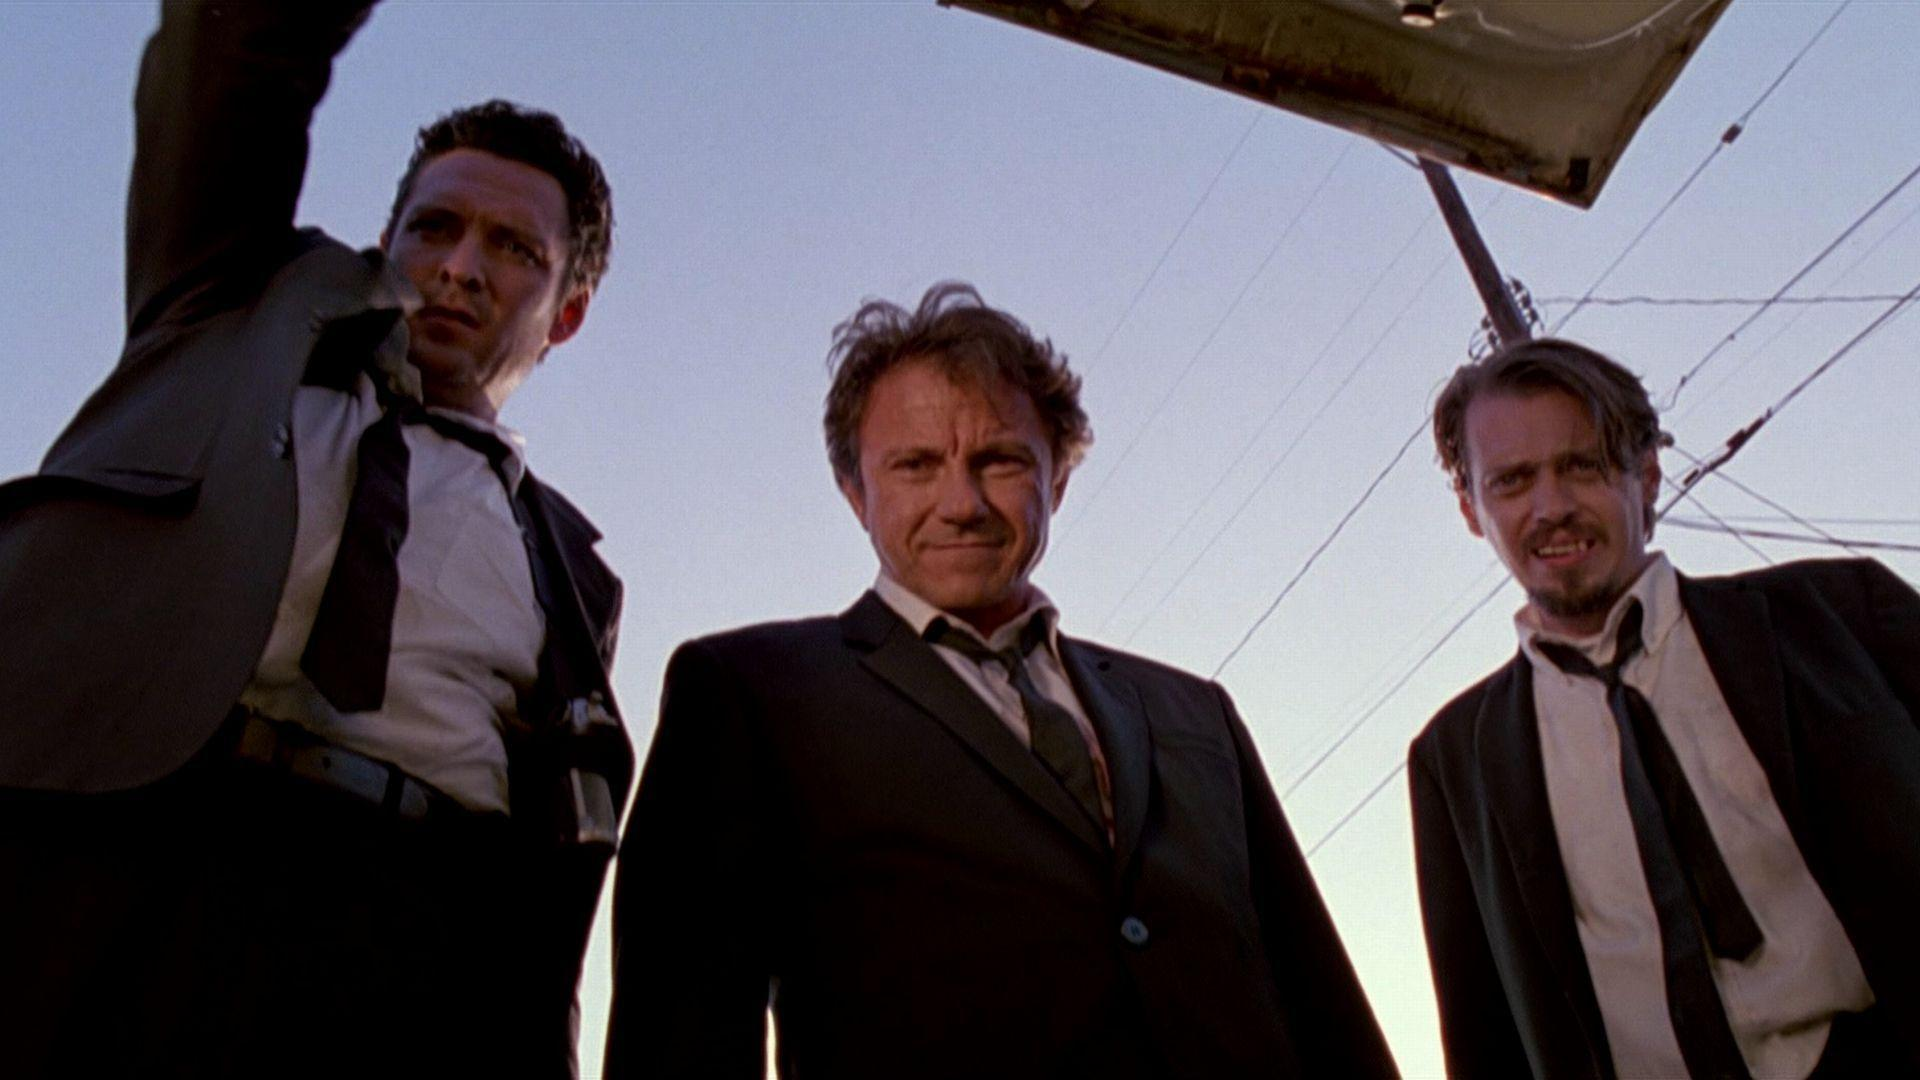 Men Reservoir Dogs Michael HD Wallpaper